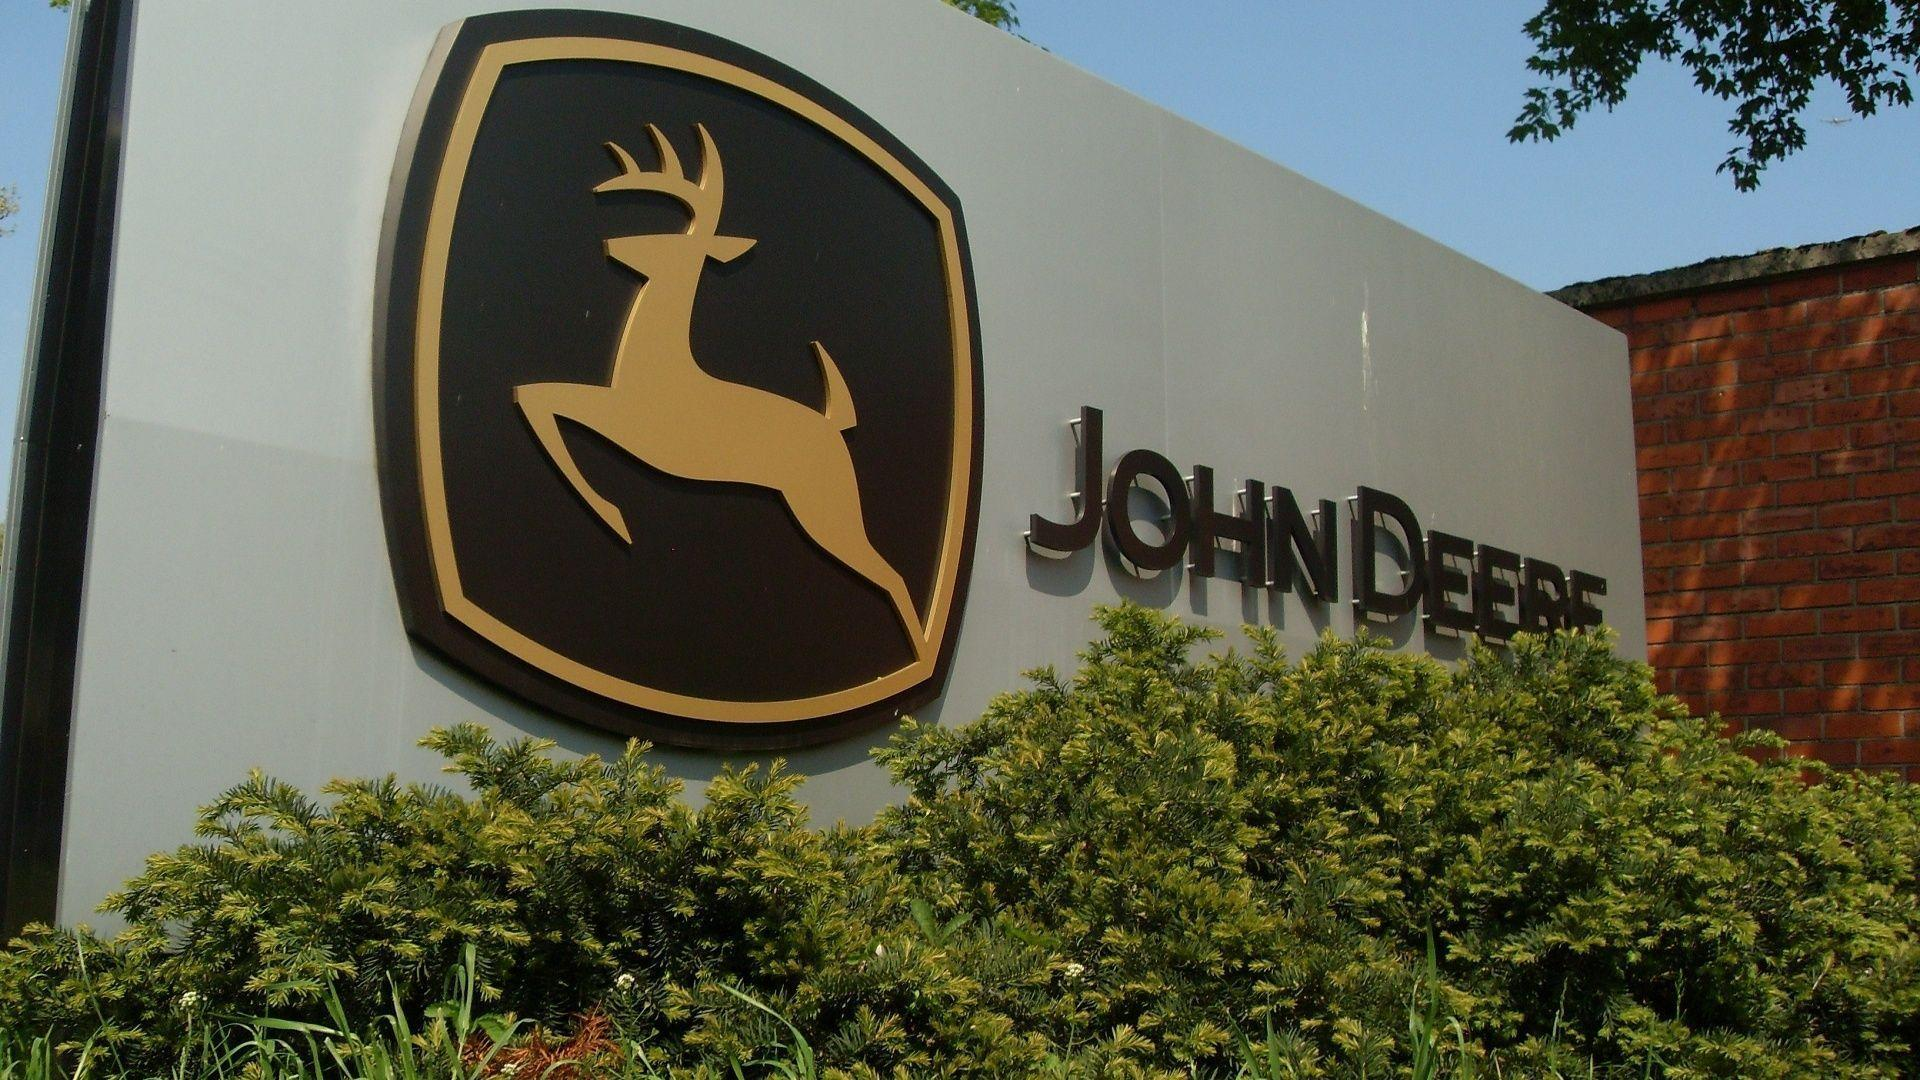 1920x1080 Brands, John Deere, John Deere Backgrounds, John Deere